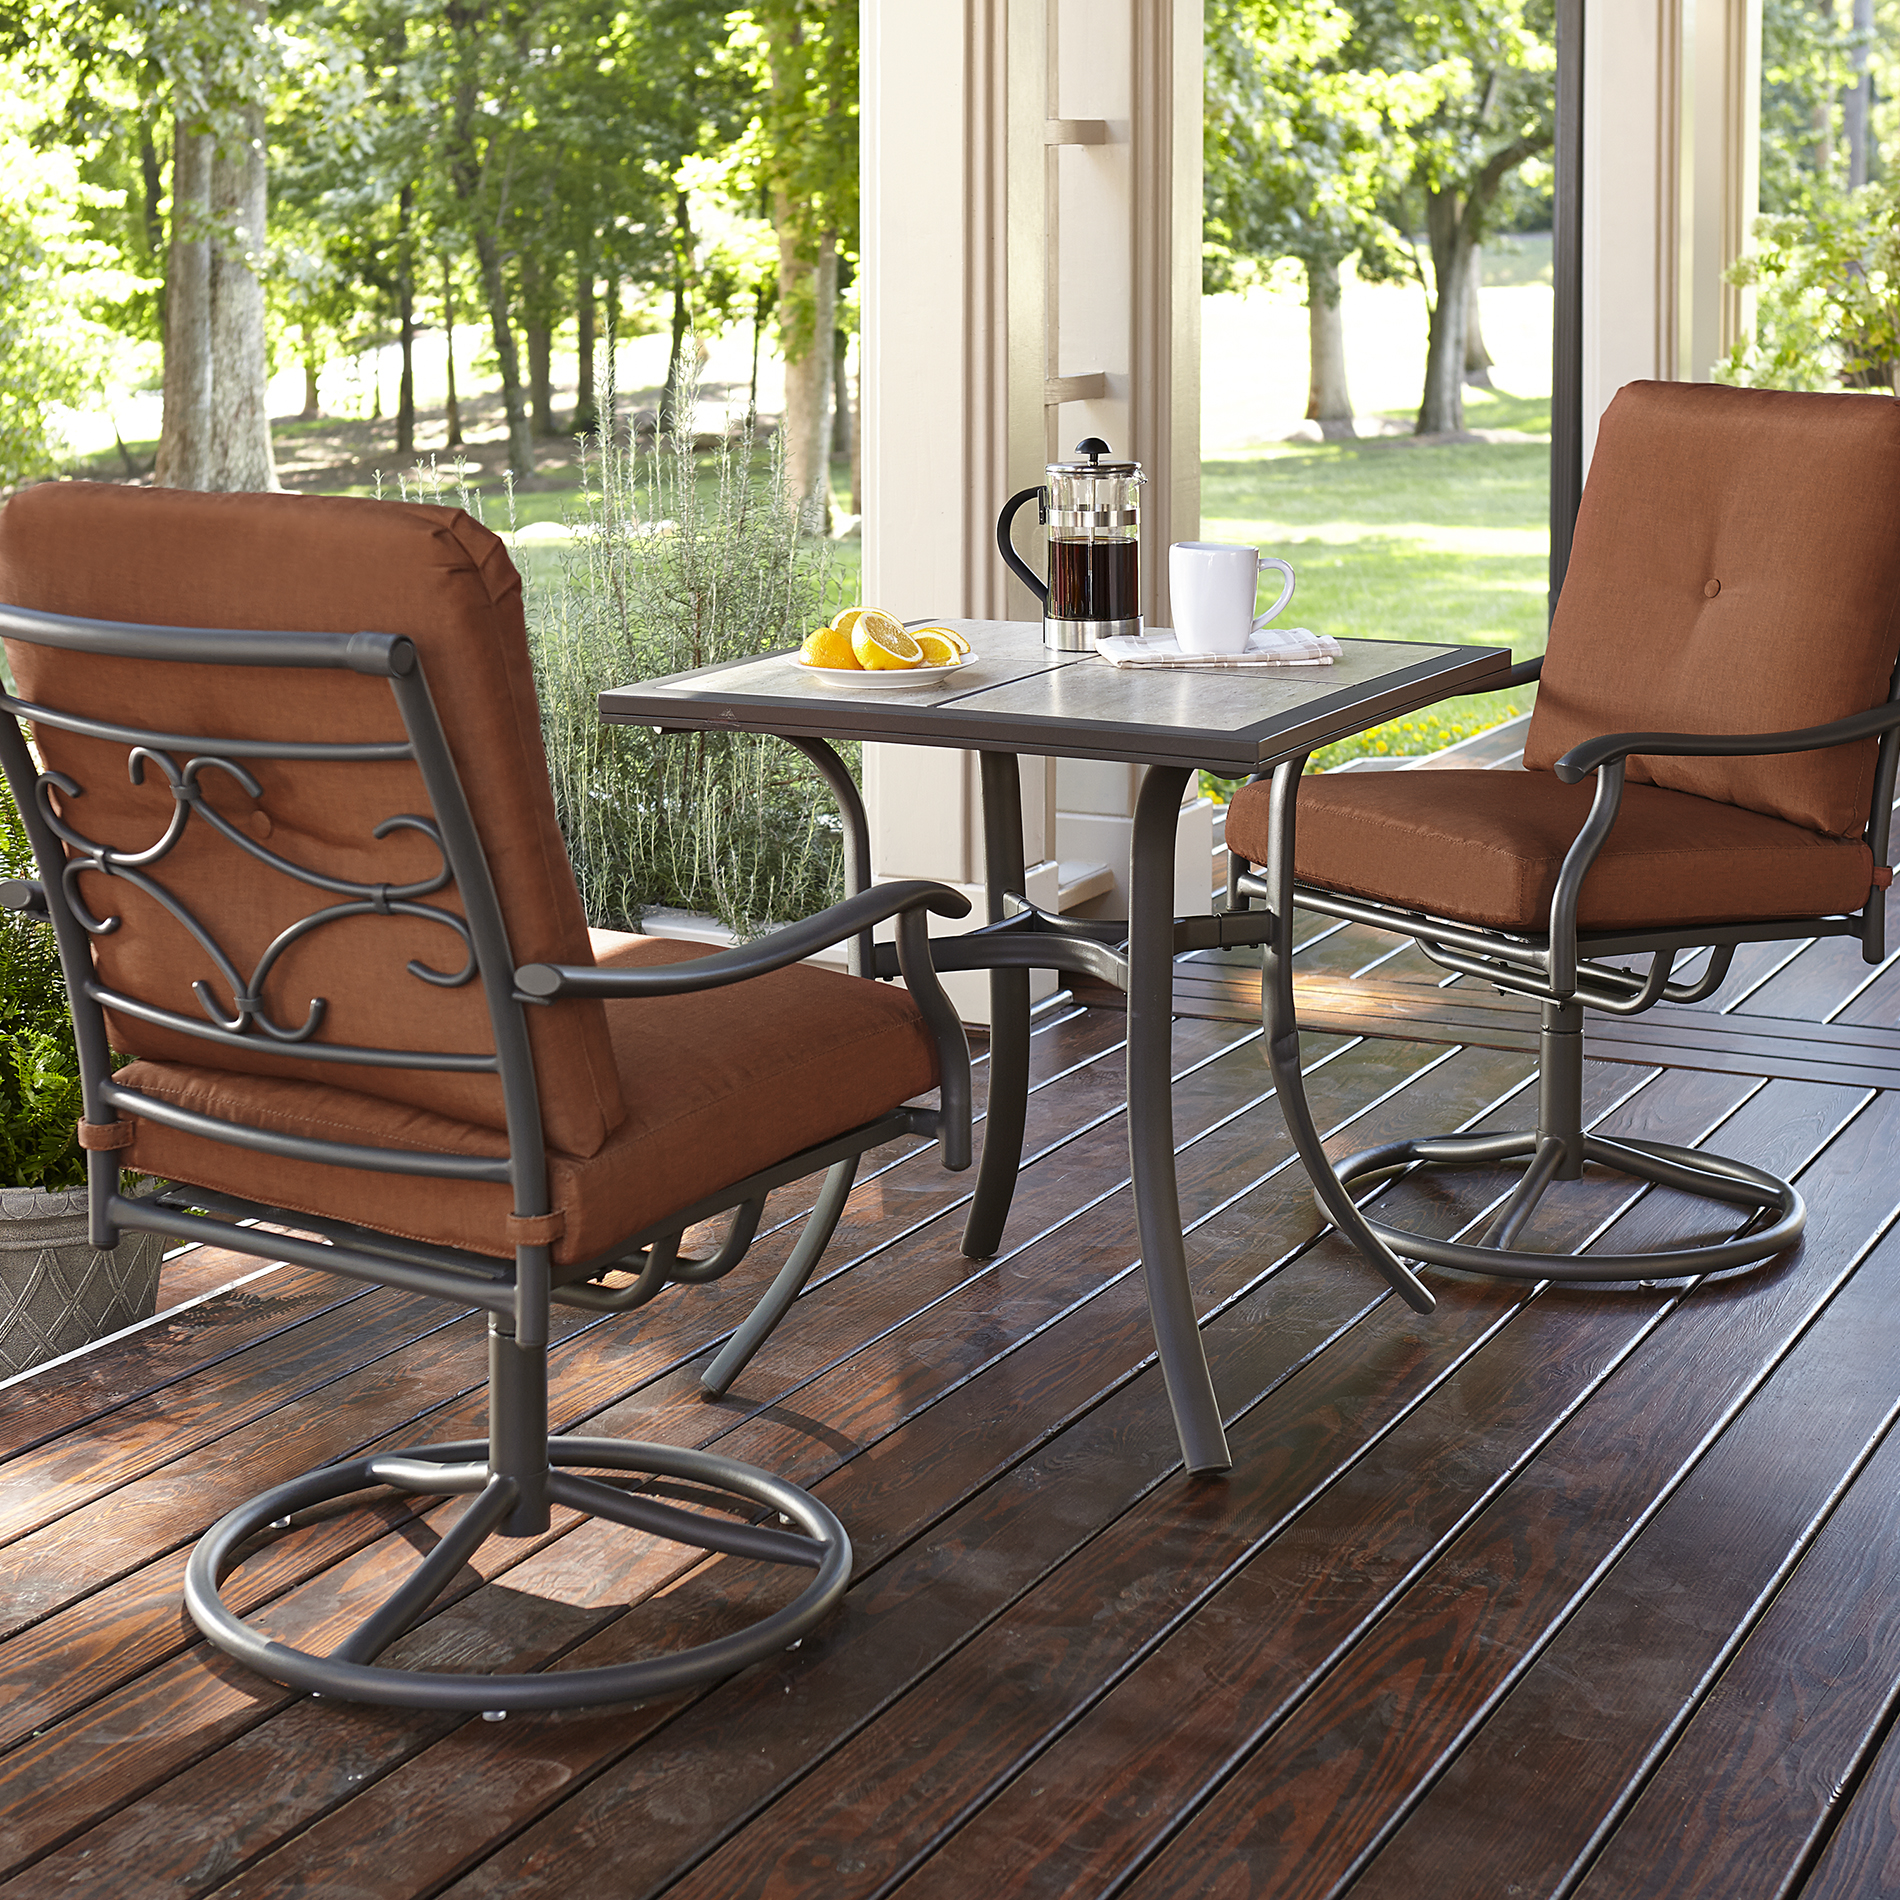 Jaclyn Smith Clermont 3 Piece Bistro Set- Rust - Limited